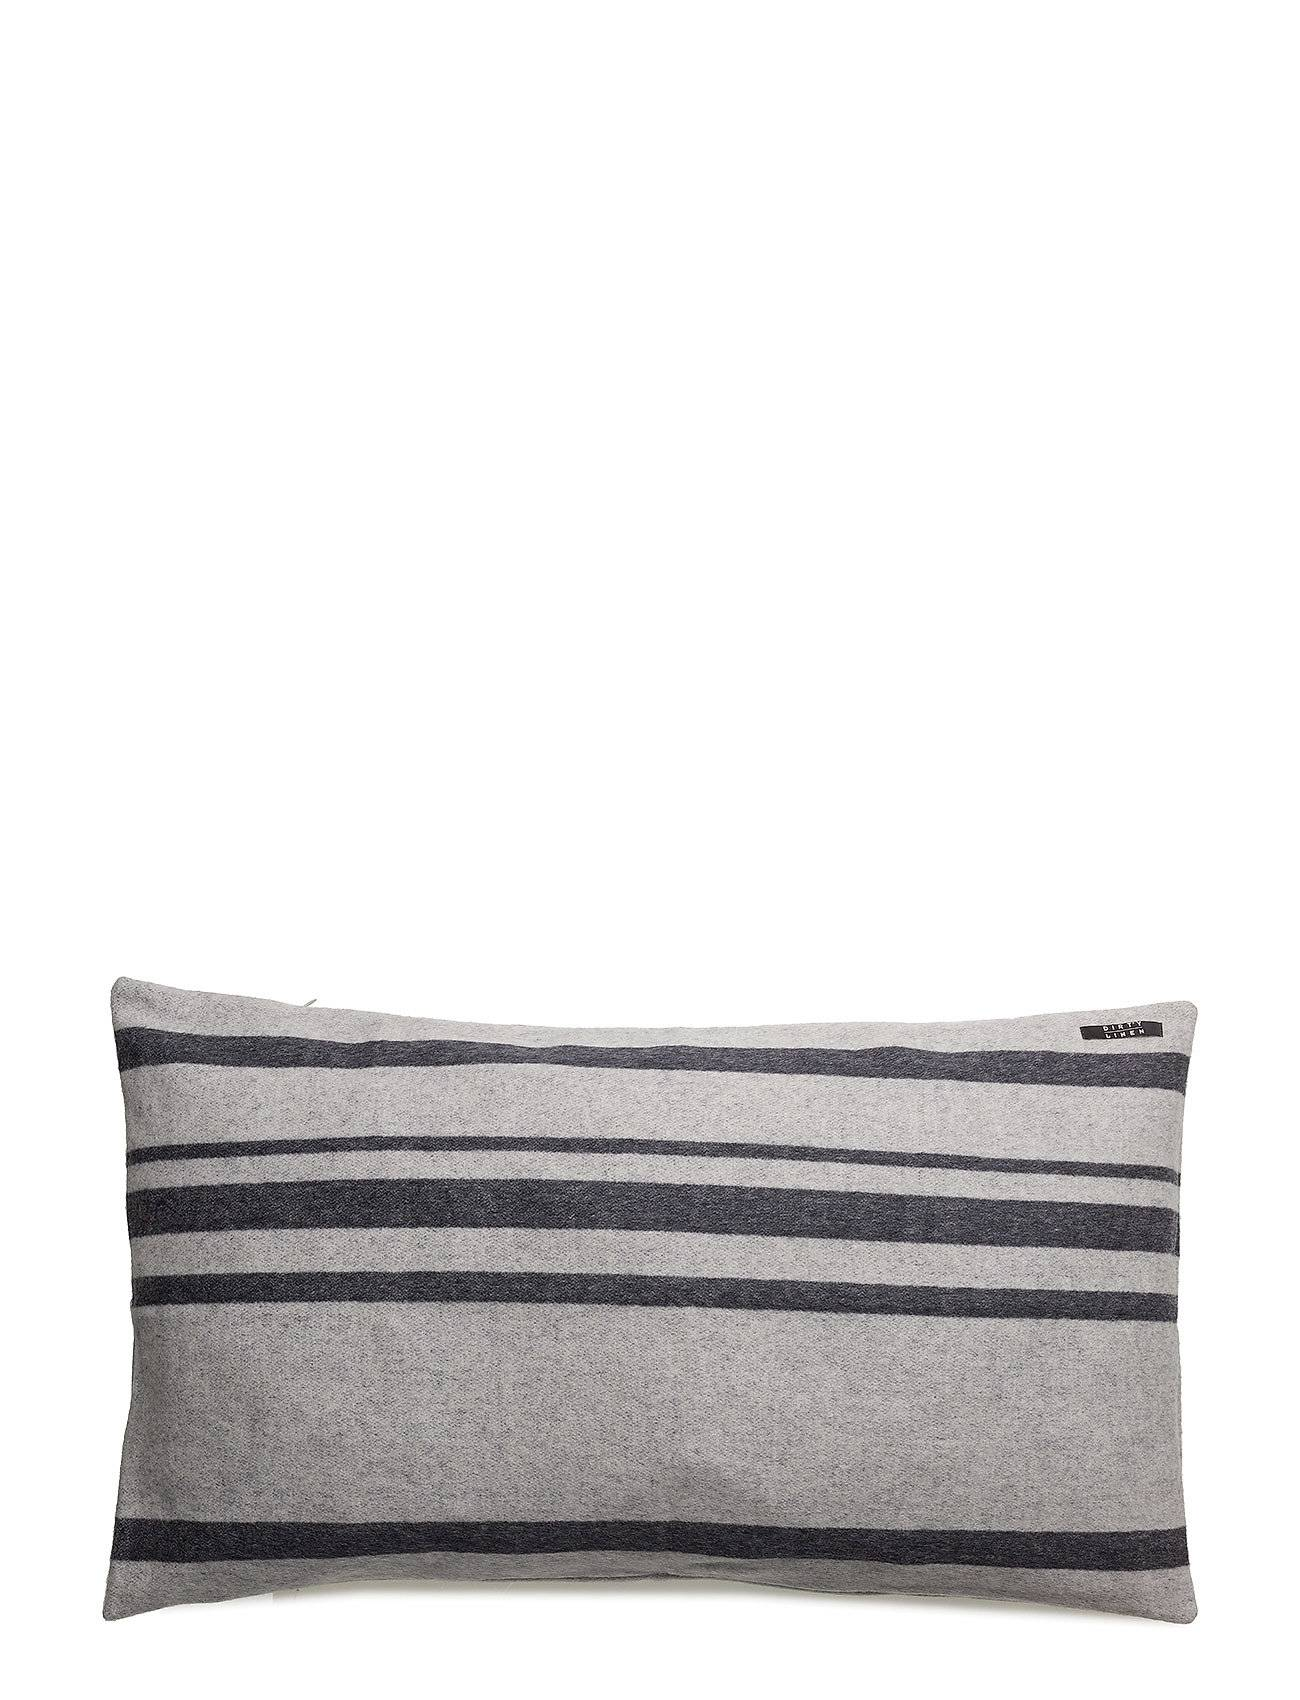 Dirty Linen Strip Decorative Cushion Cover